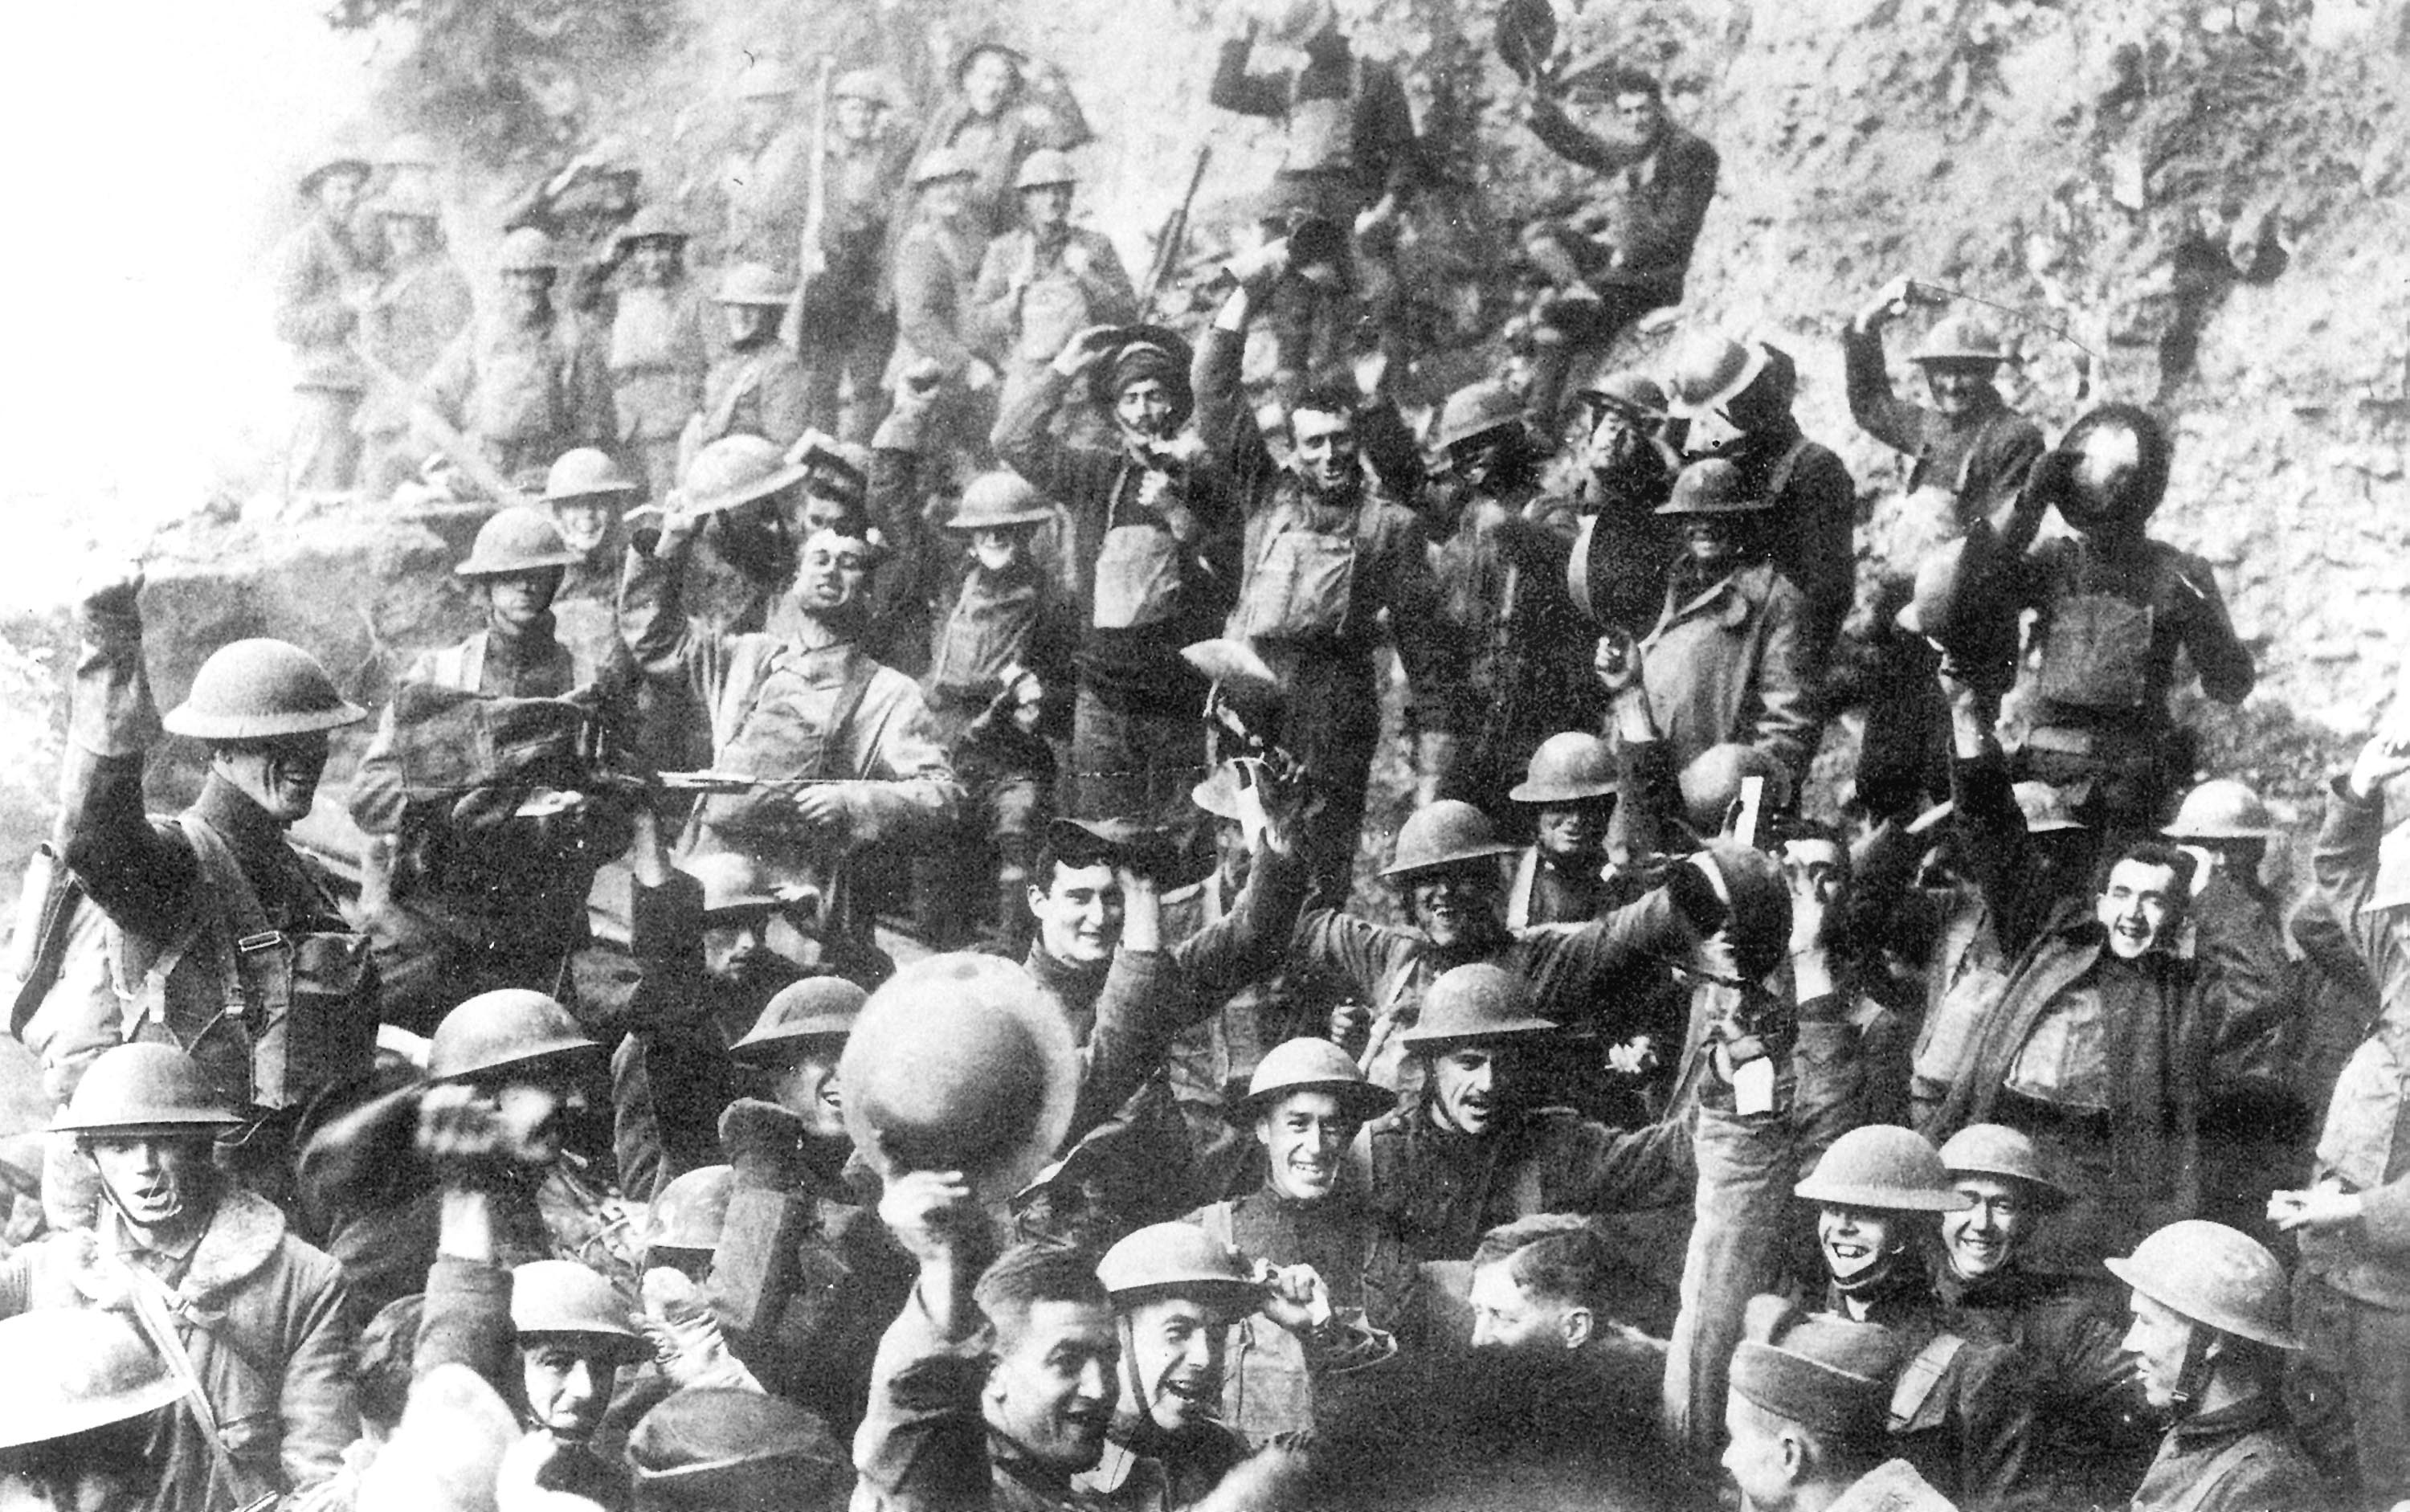 A discussion on the end of world war i